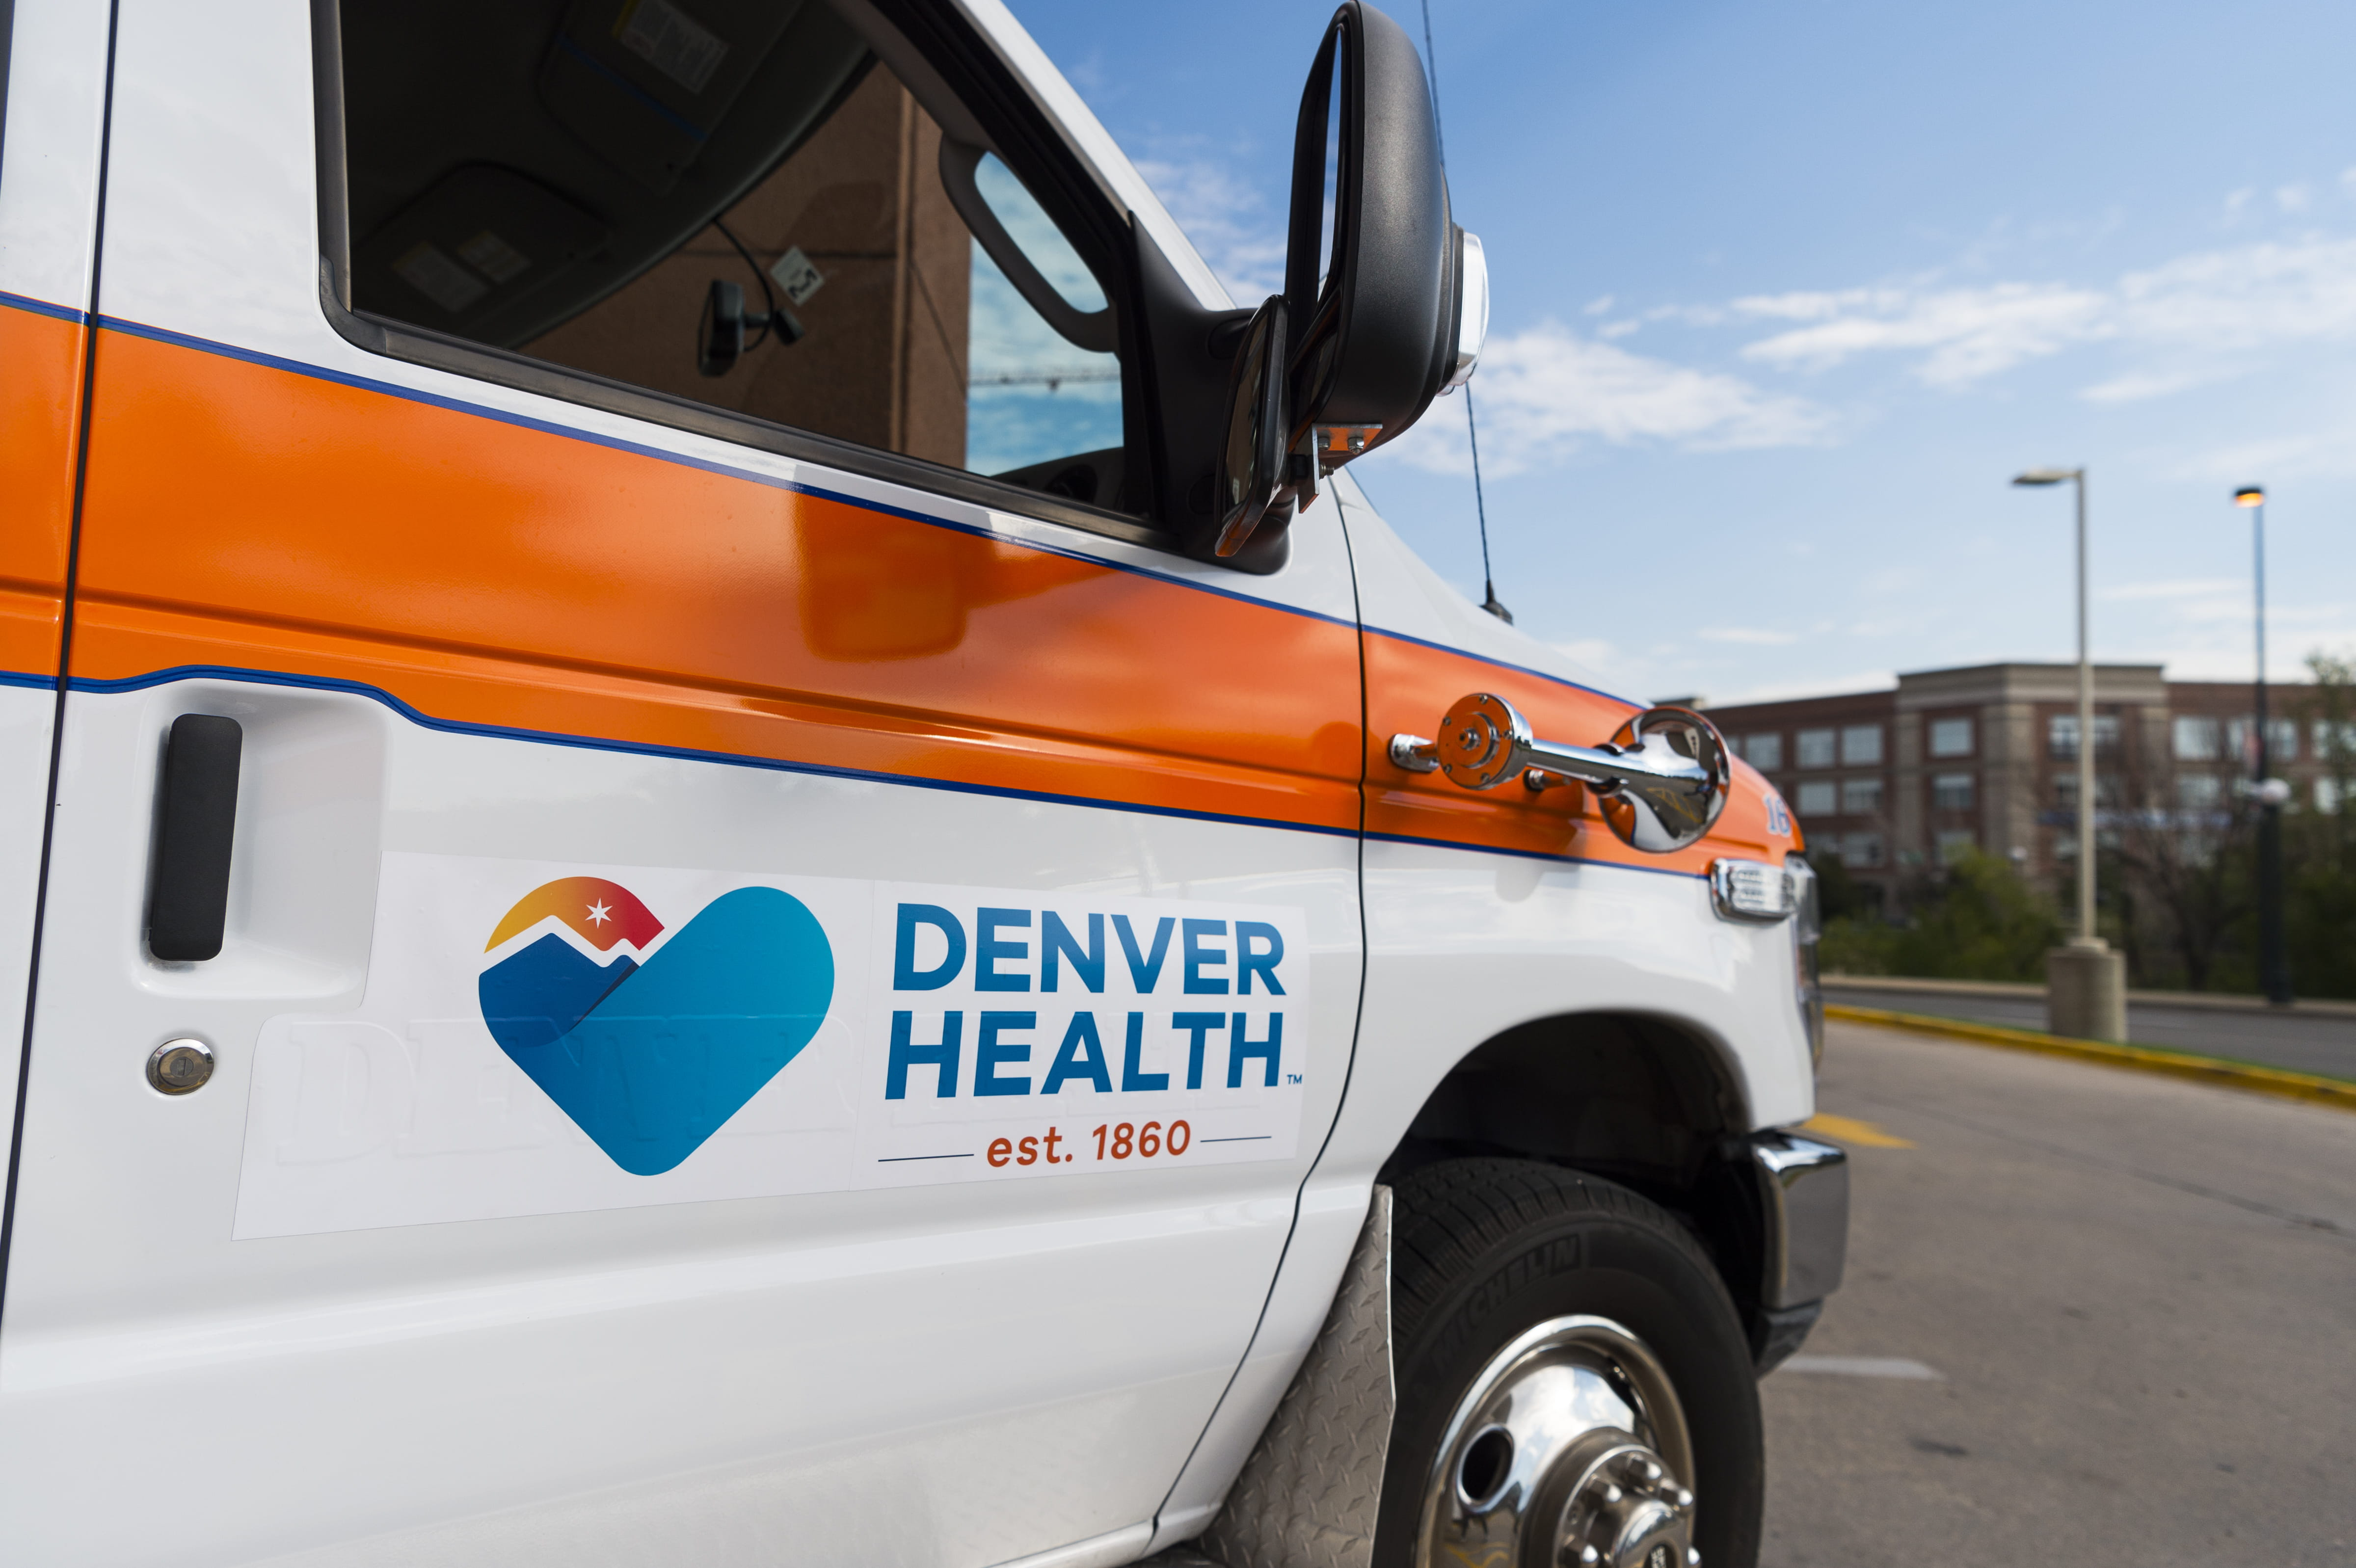 Denver Health Ambulance